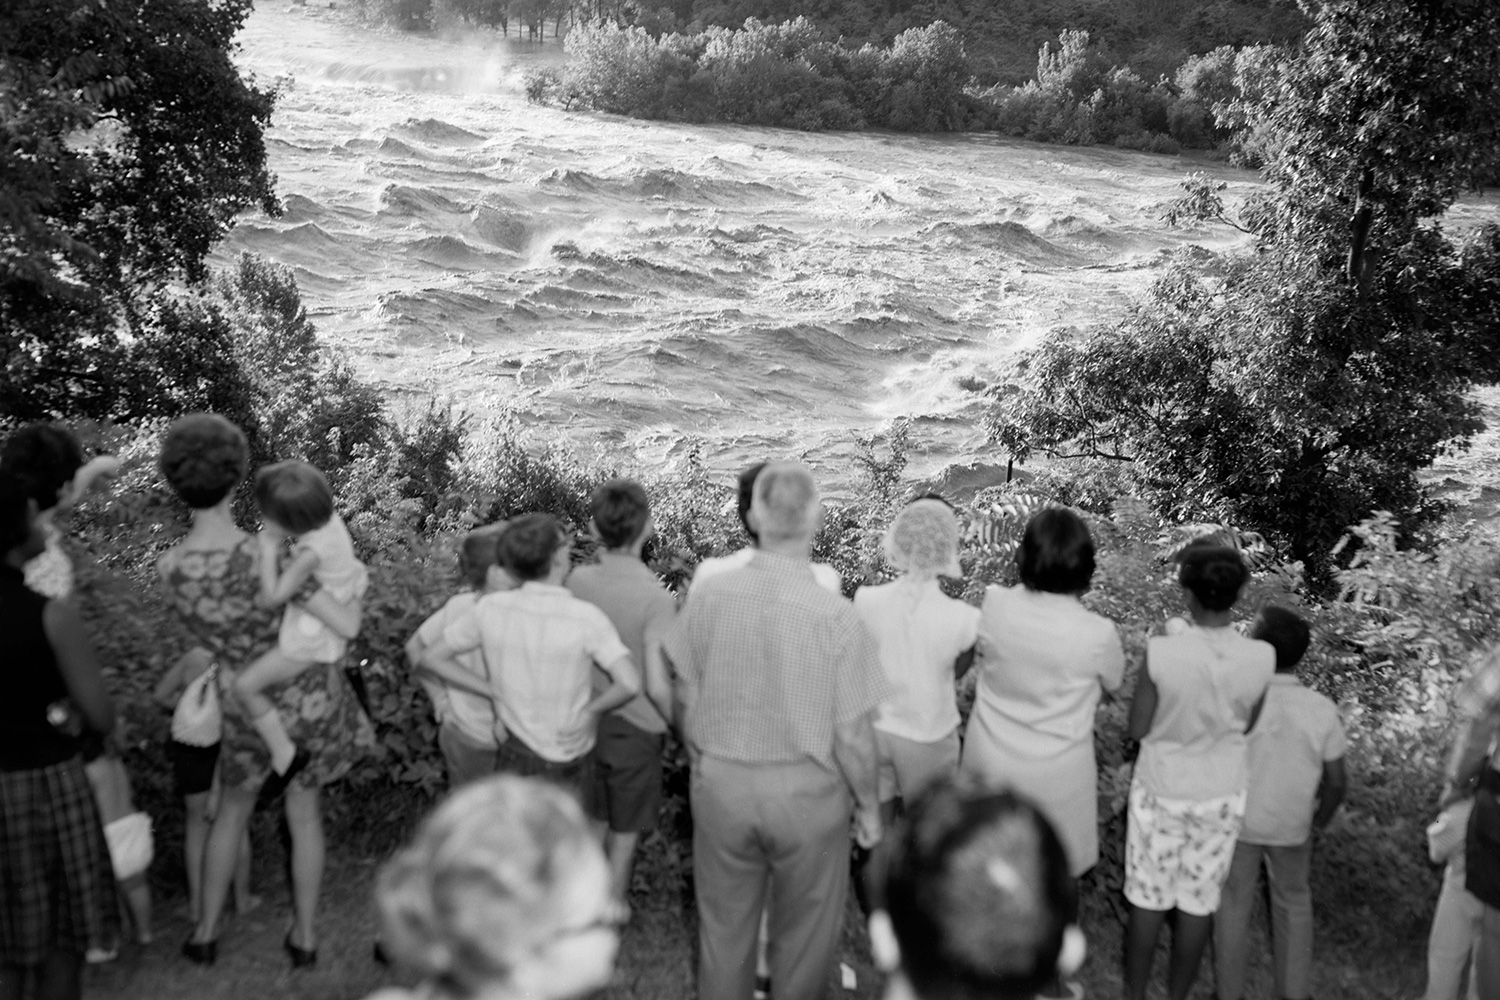 Onlookers gather to watch the flood waters of the James River near the south end of the Lee Bridge in Richmond. The James River peaked at 28.6 ft in Richmond from Hurricane Camille. (Photo courtesy The Library of Virginia/Flickr Commons)